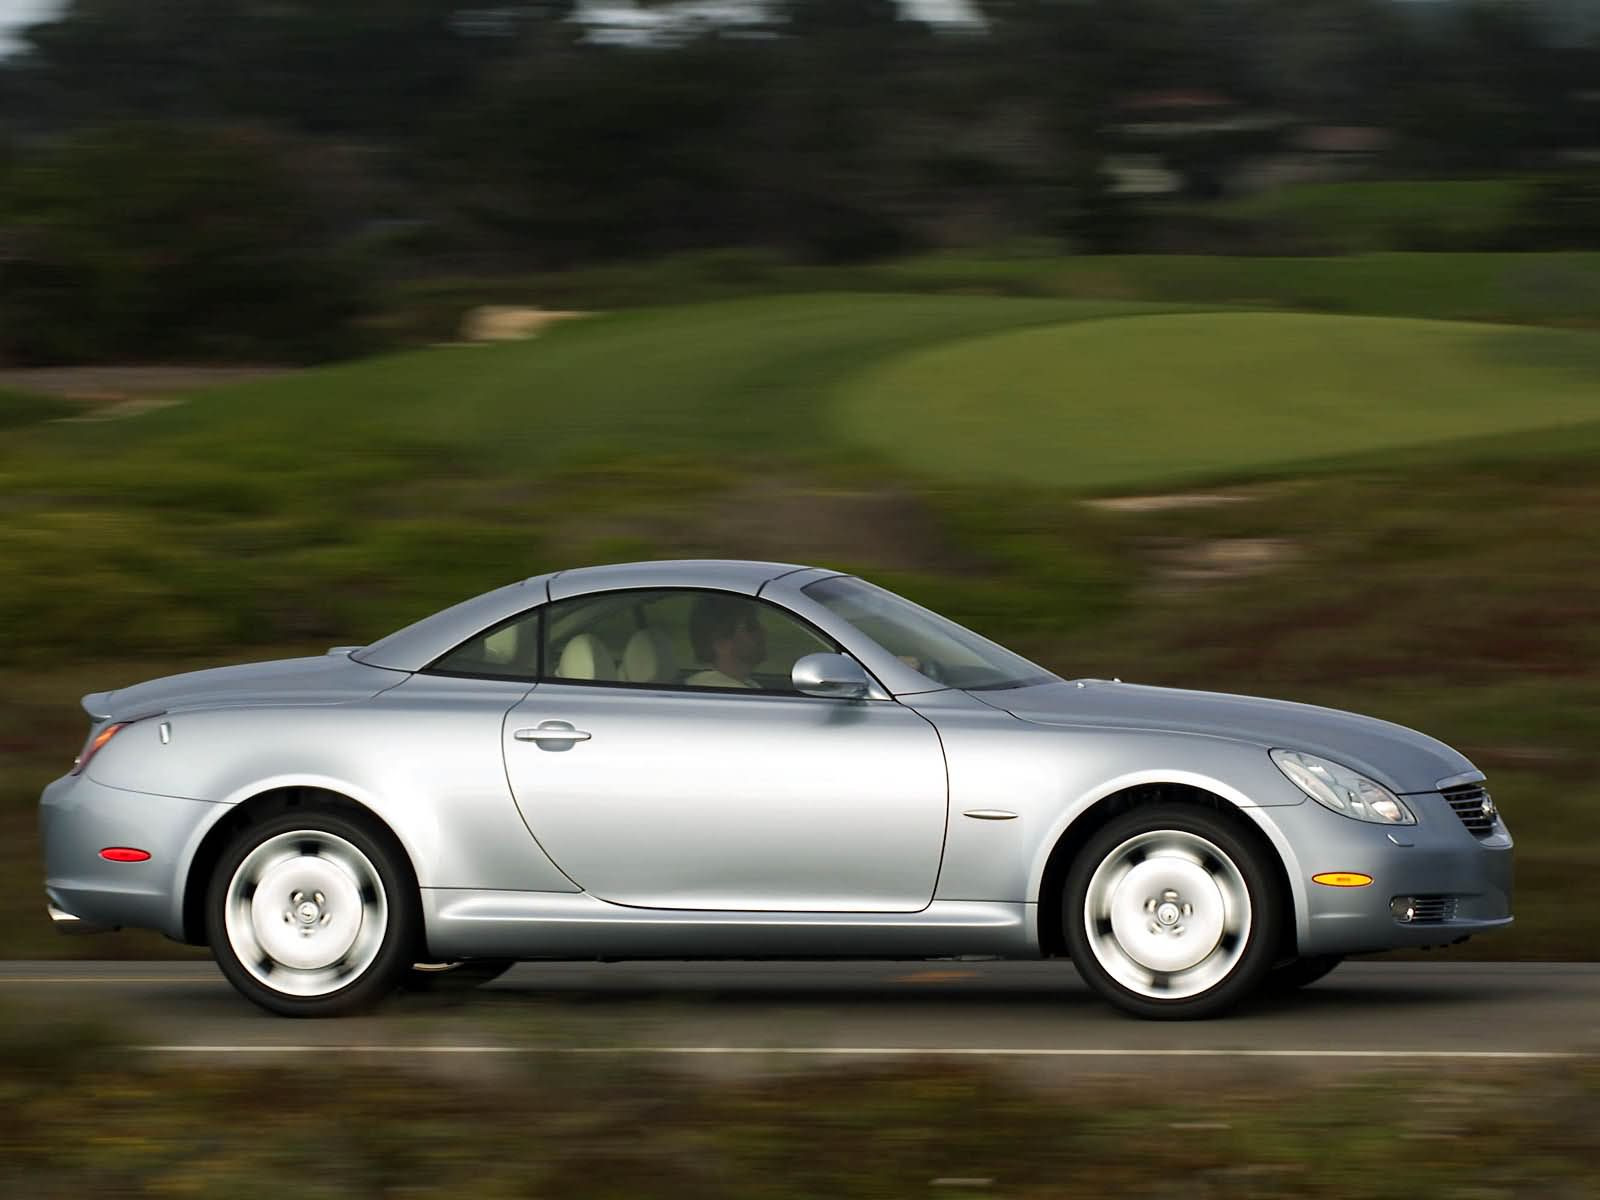 Lexus SC 430 photo 3025